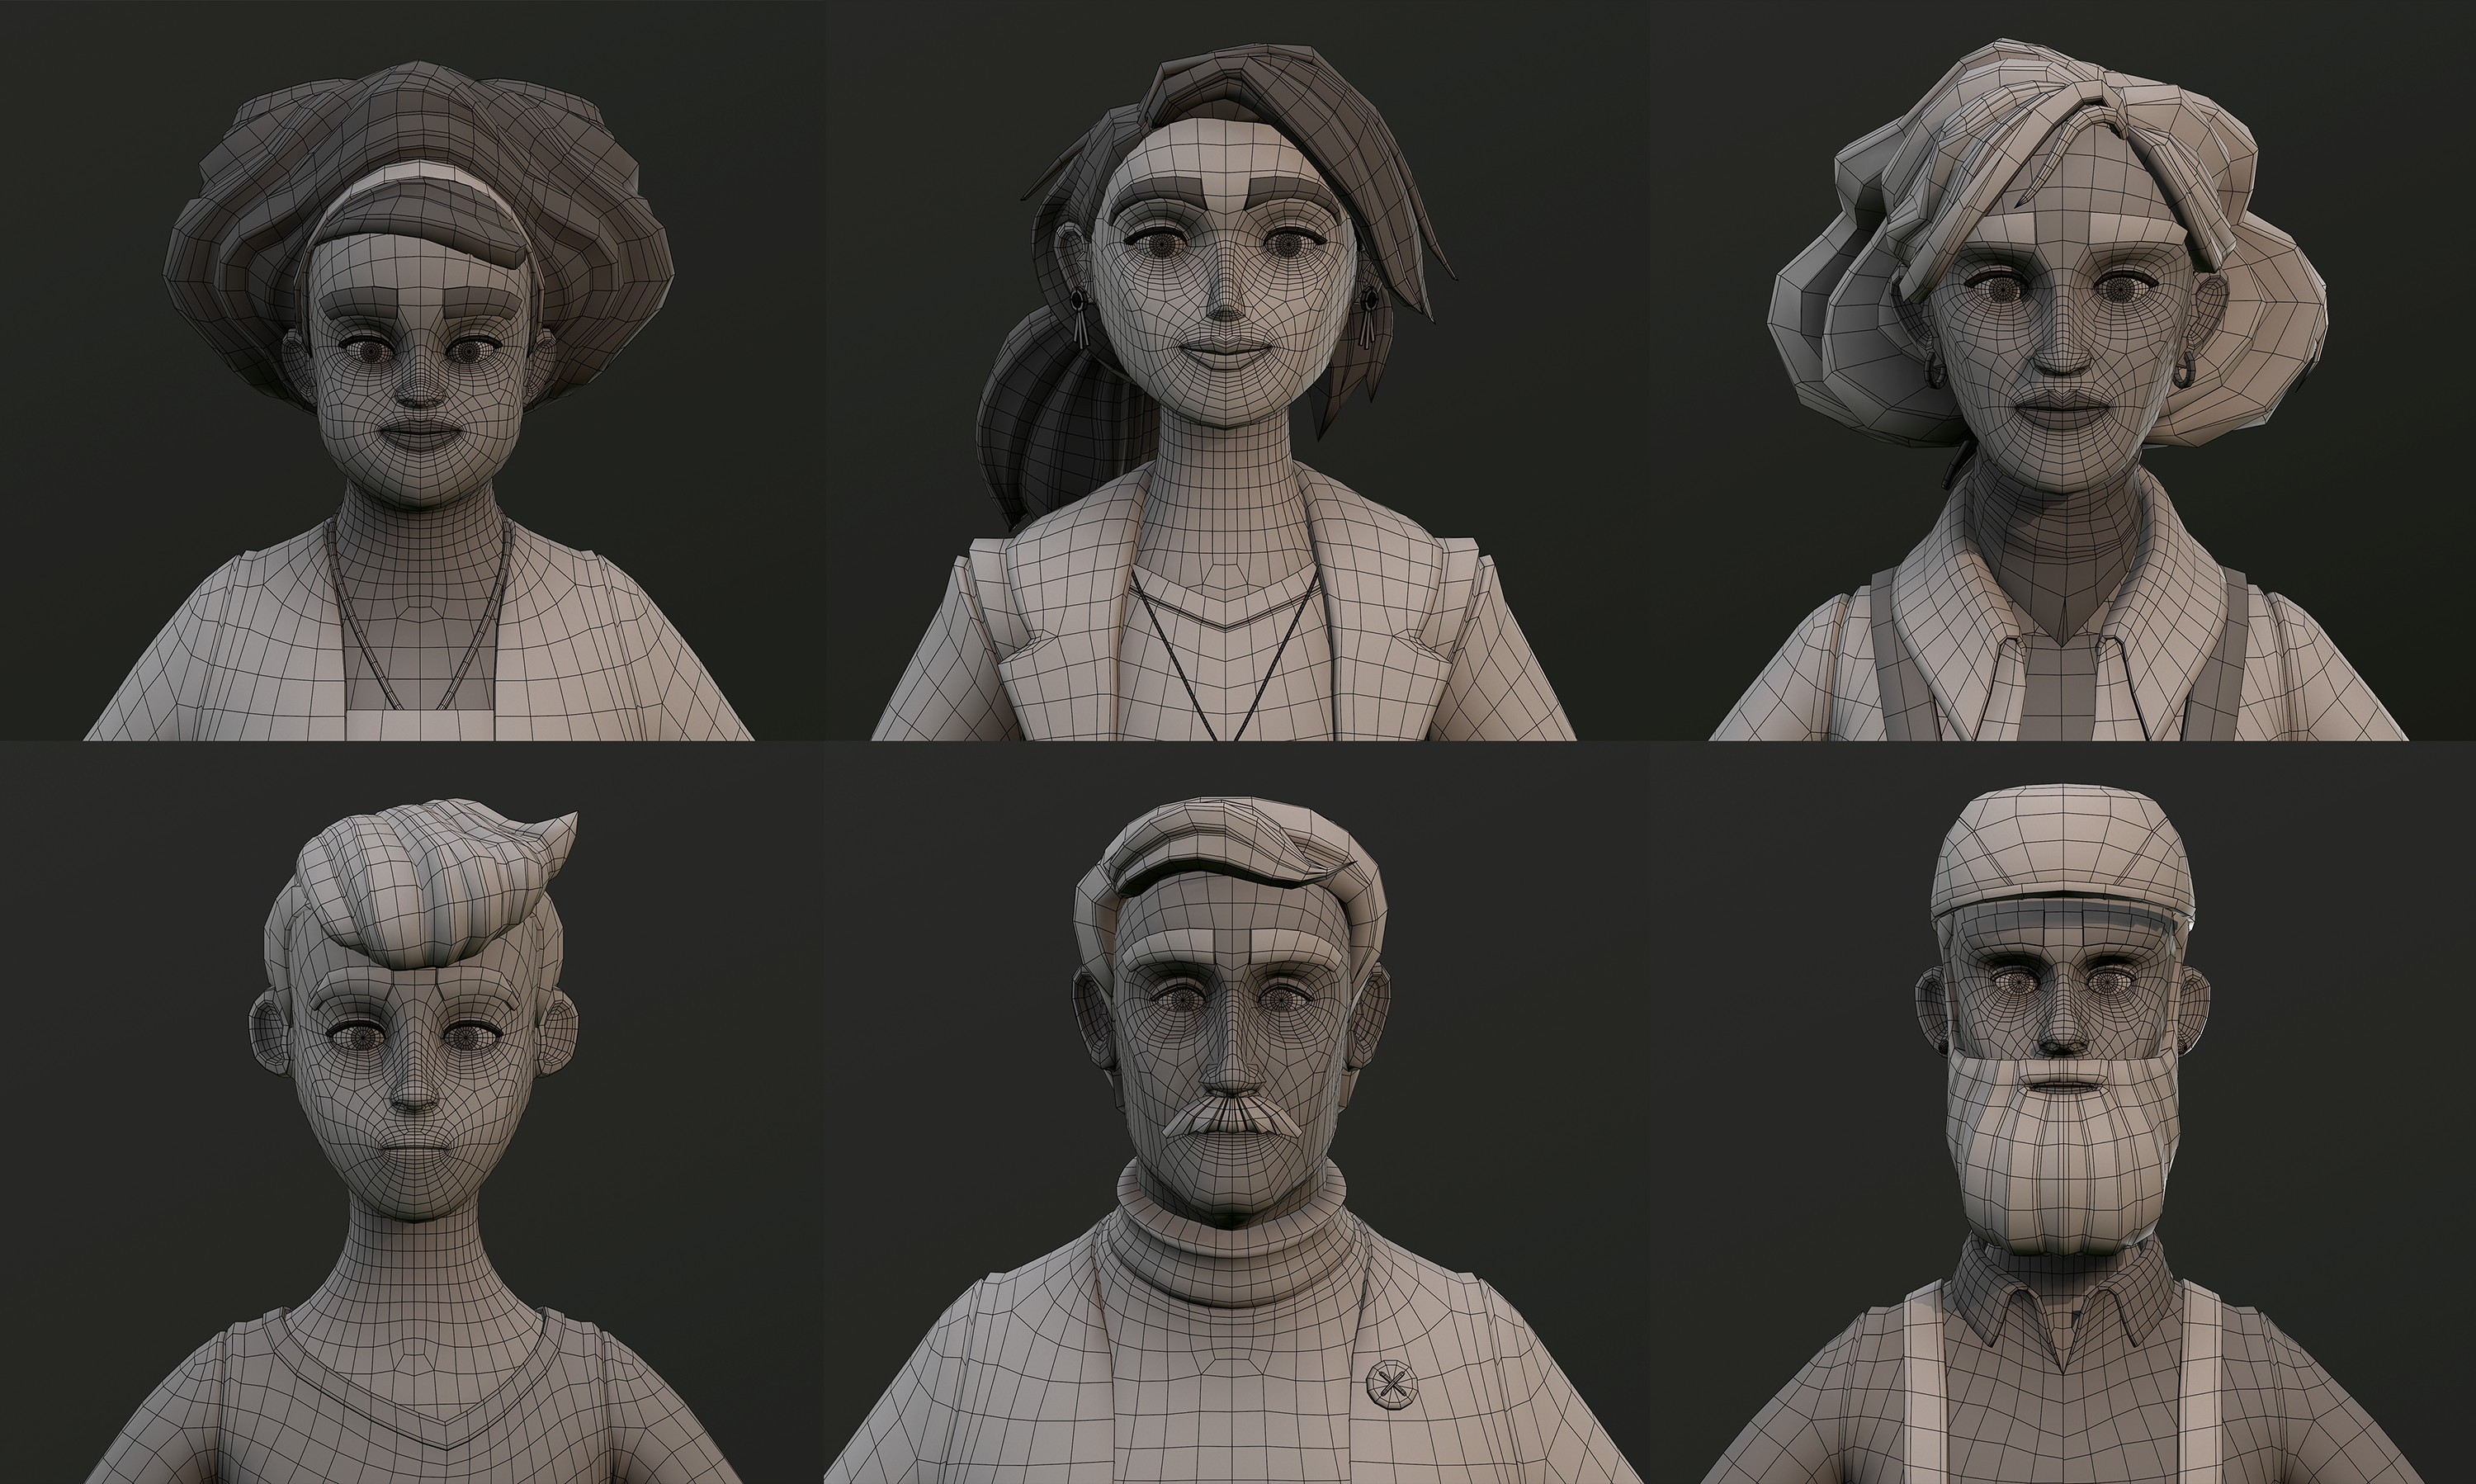 Wireframe of character heads.